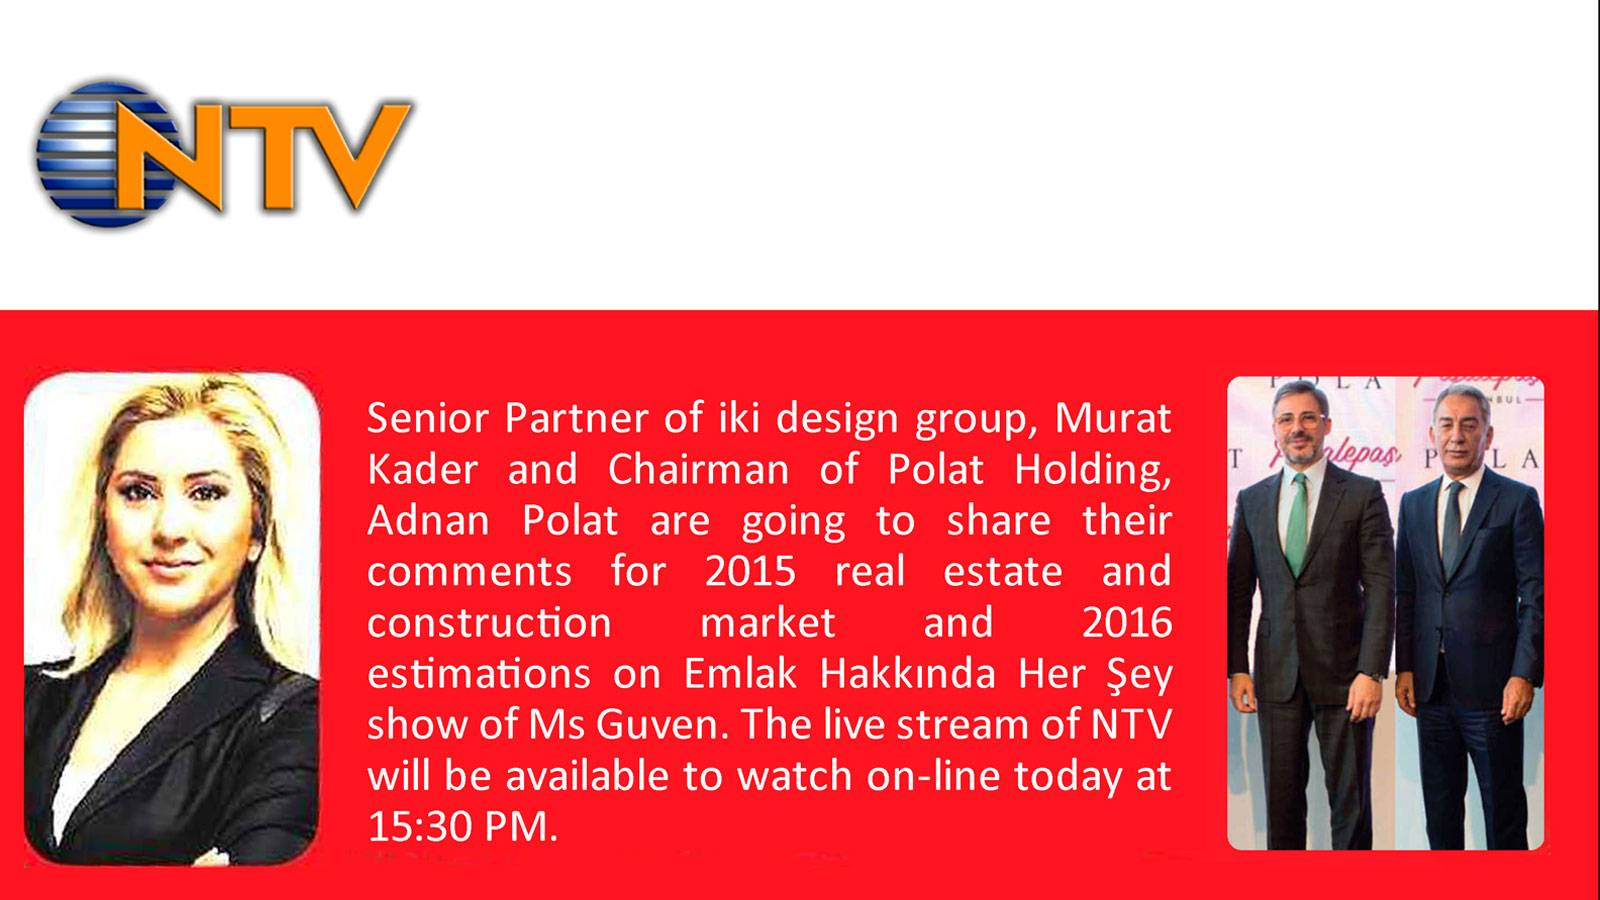 05.01.2016 Emlak Hakkında Her Şey will be live broadcast on NTV today at 1530 PM.